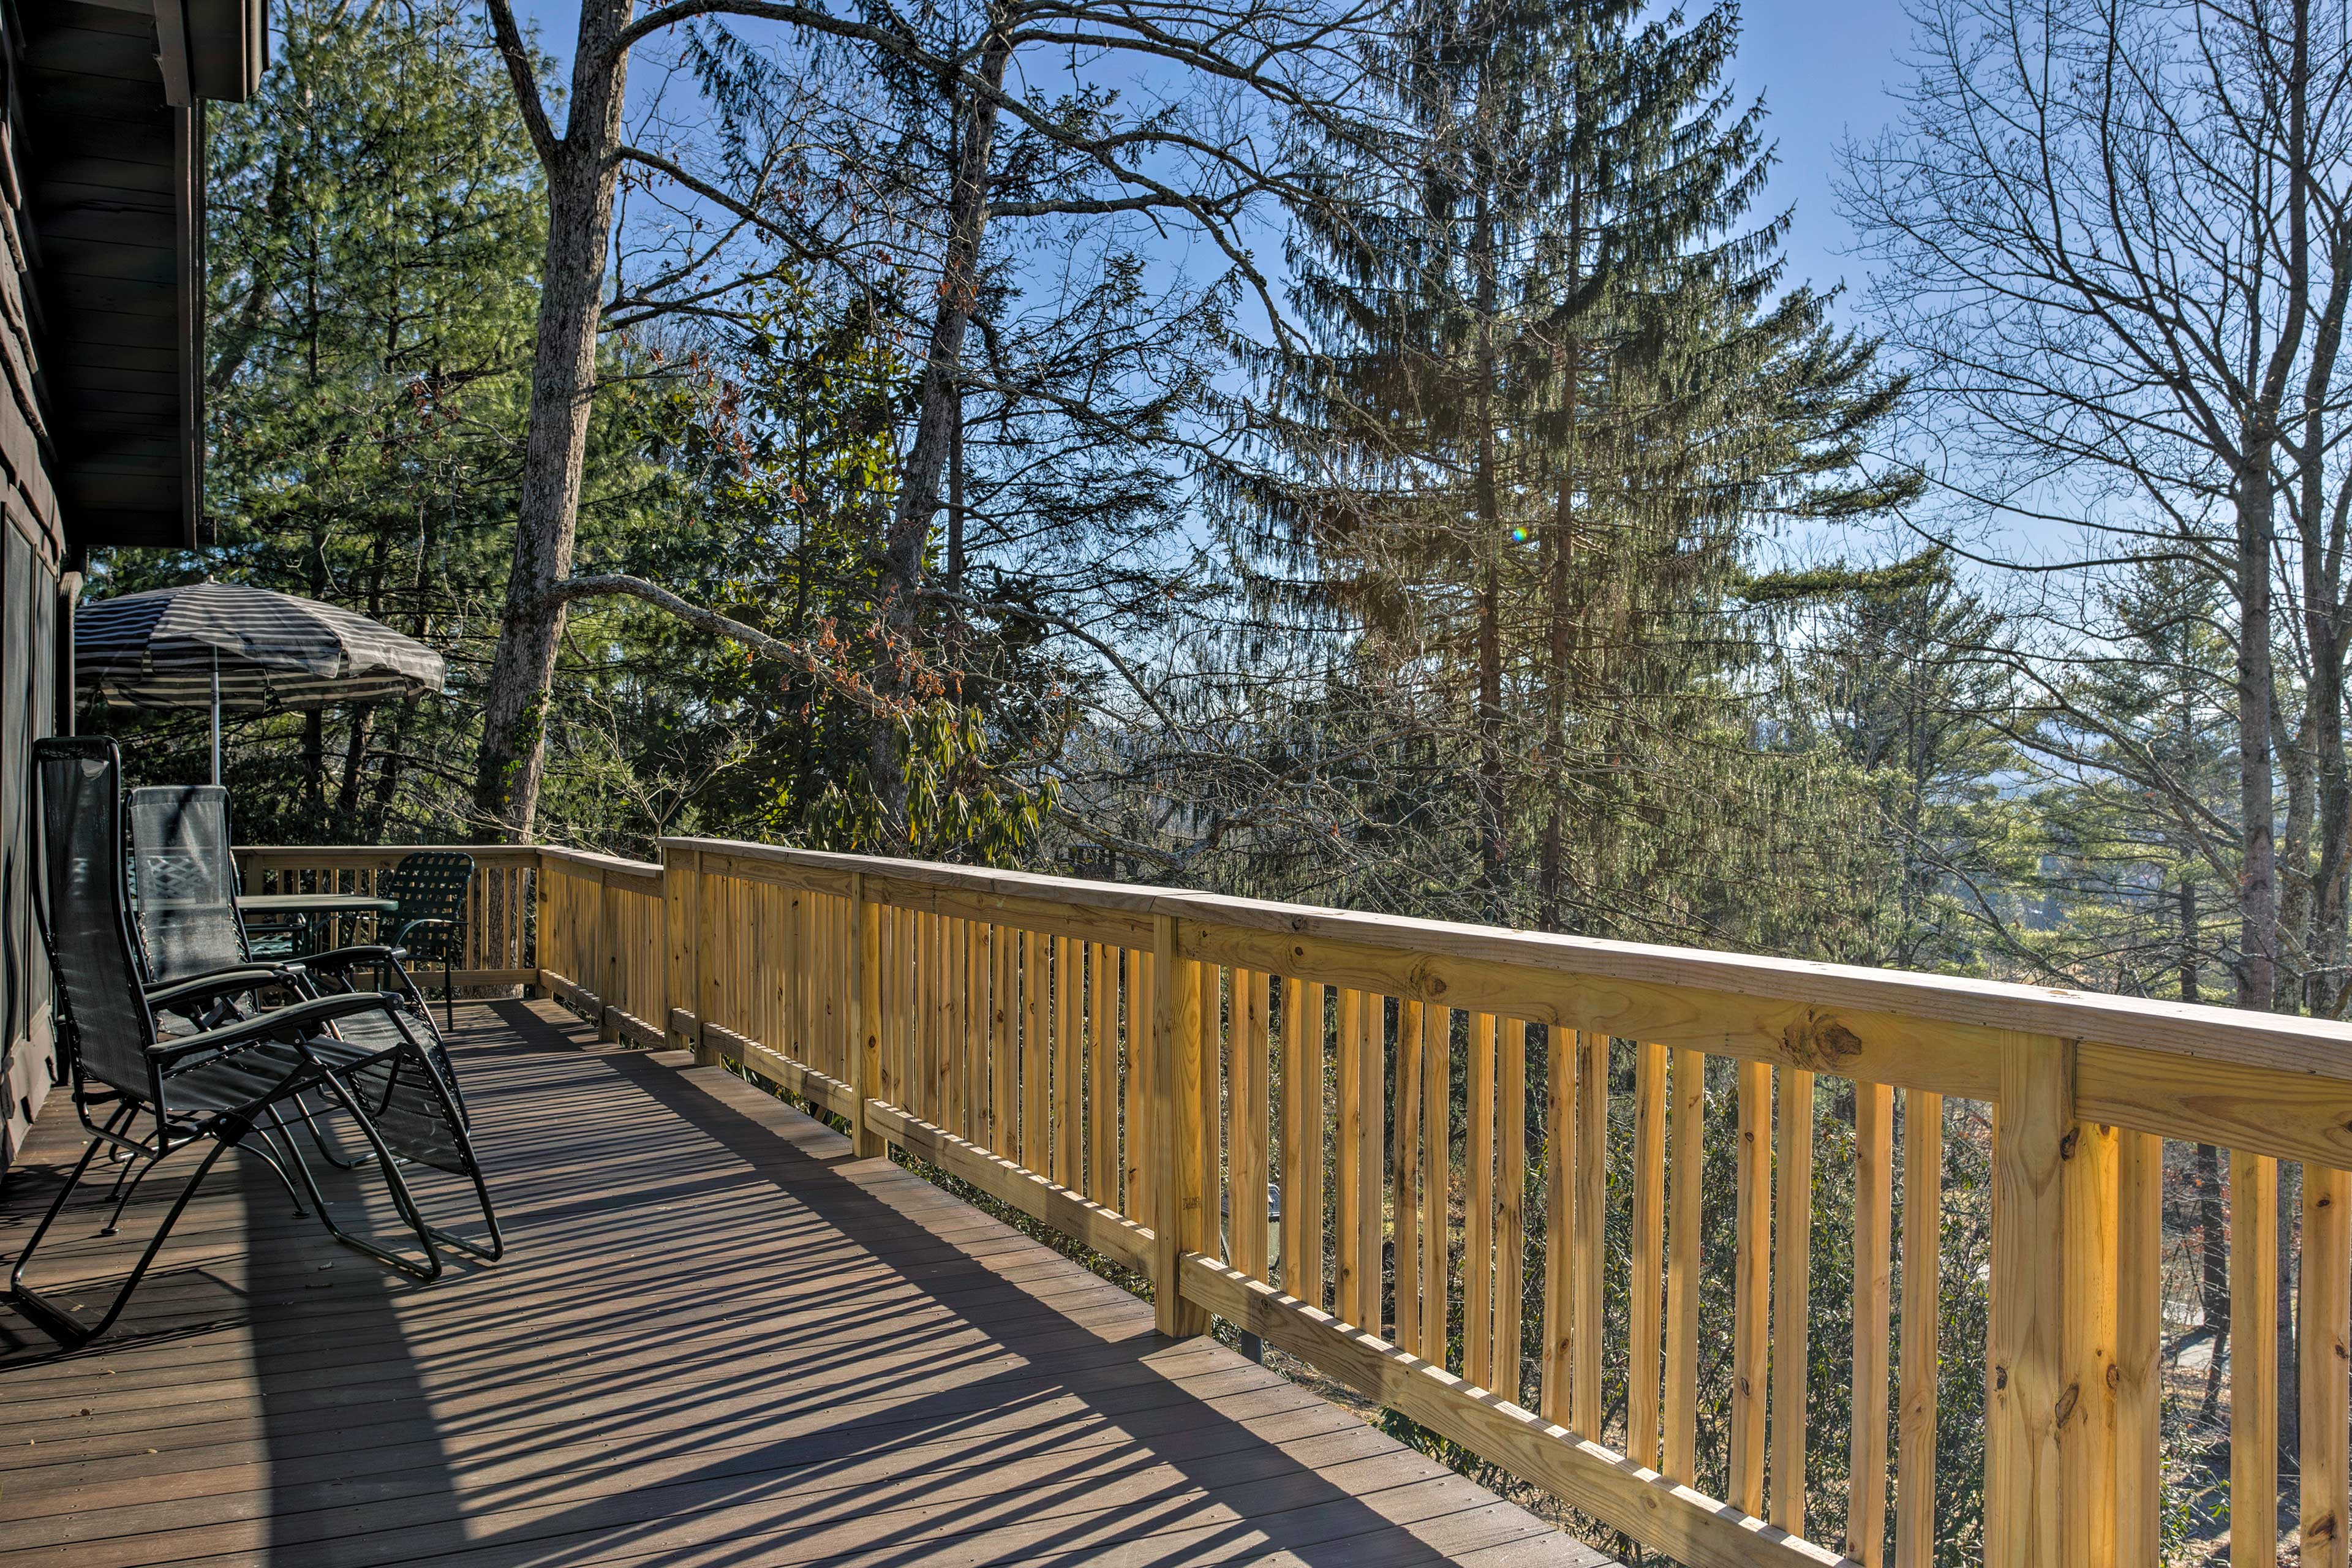 Bring a bottle of wine out to the deck to enjoy the North Carolina landscape!